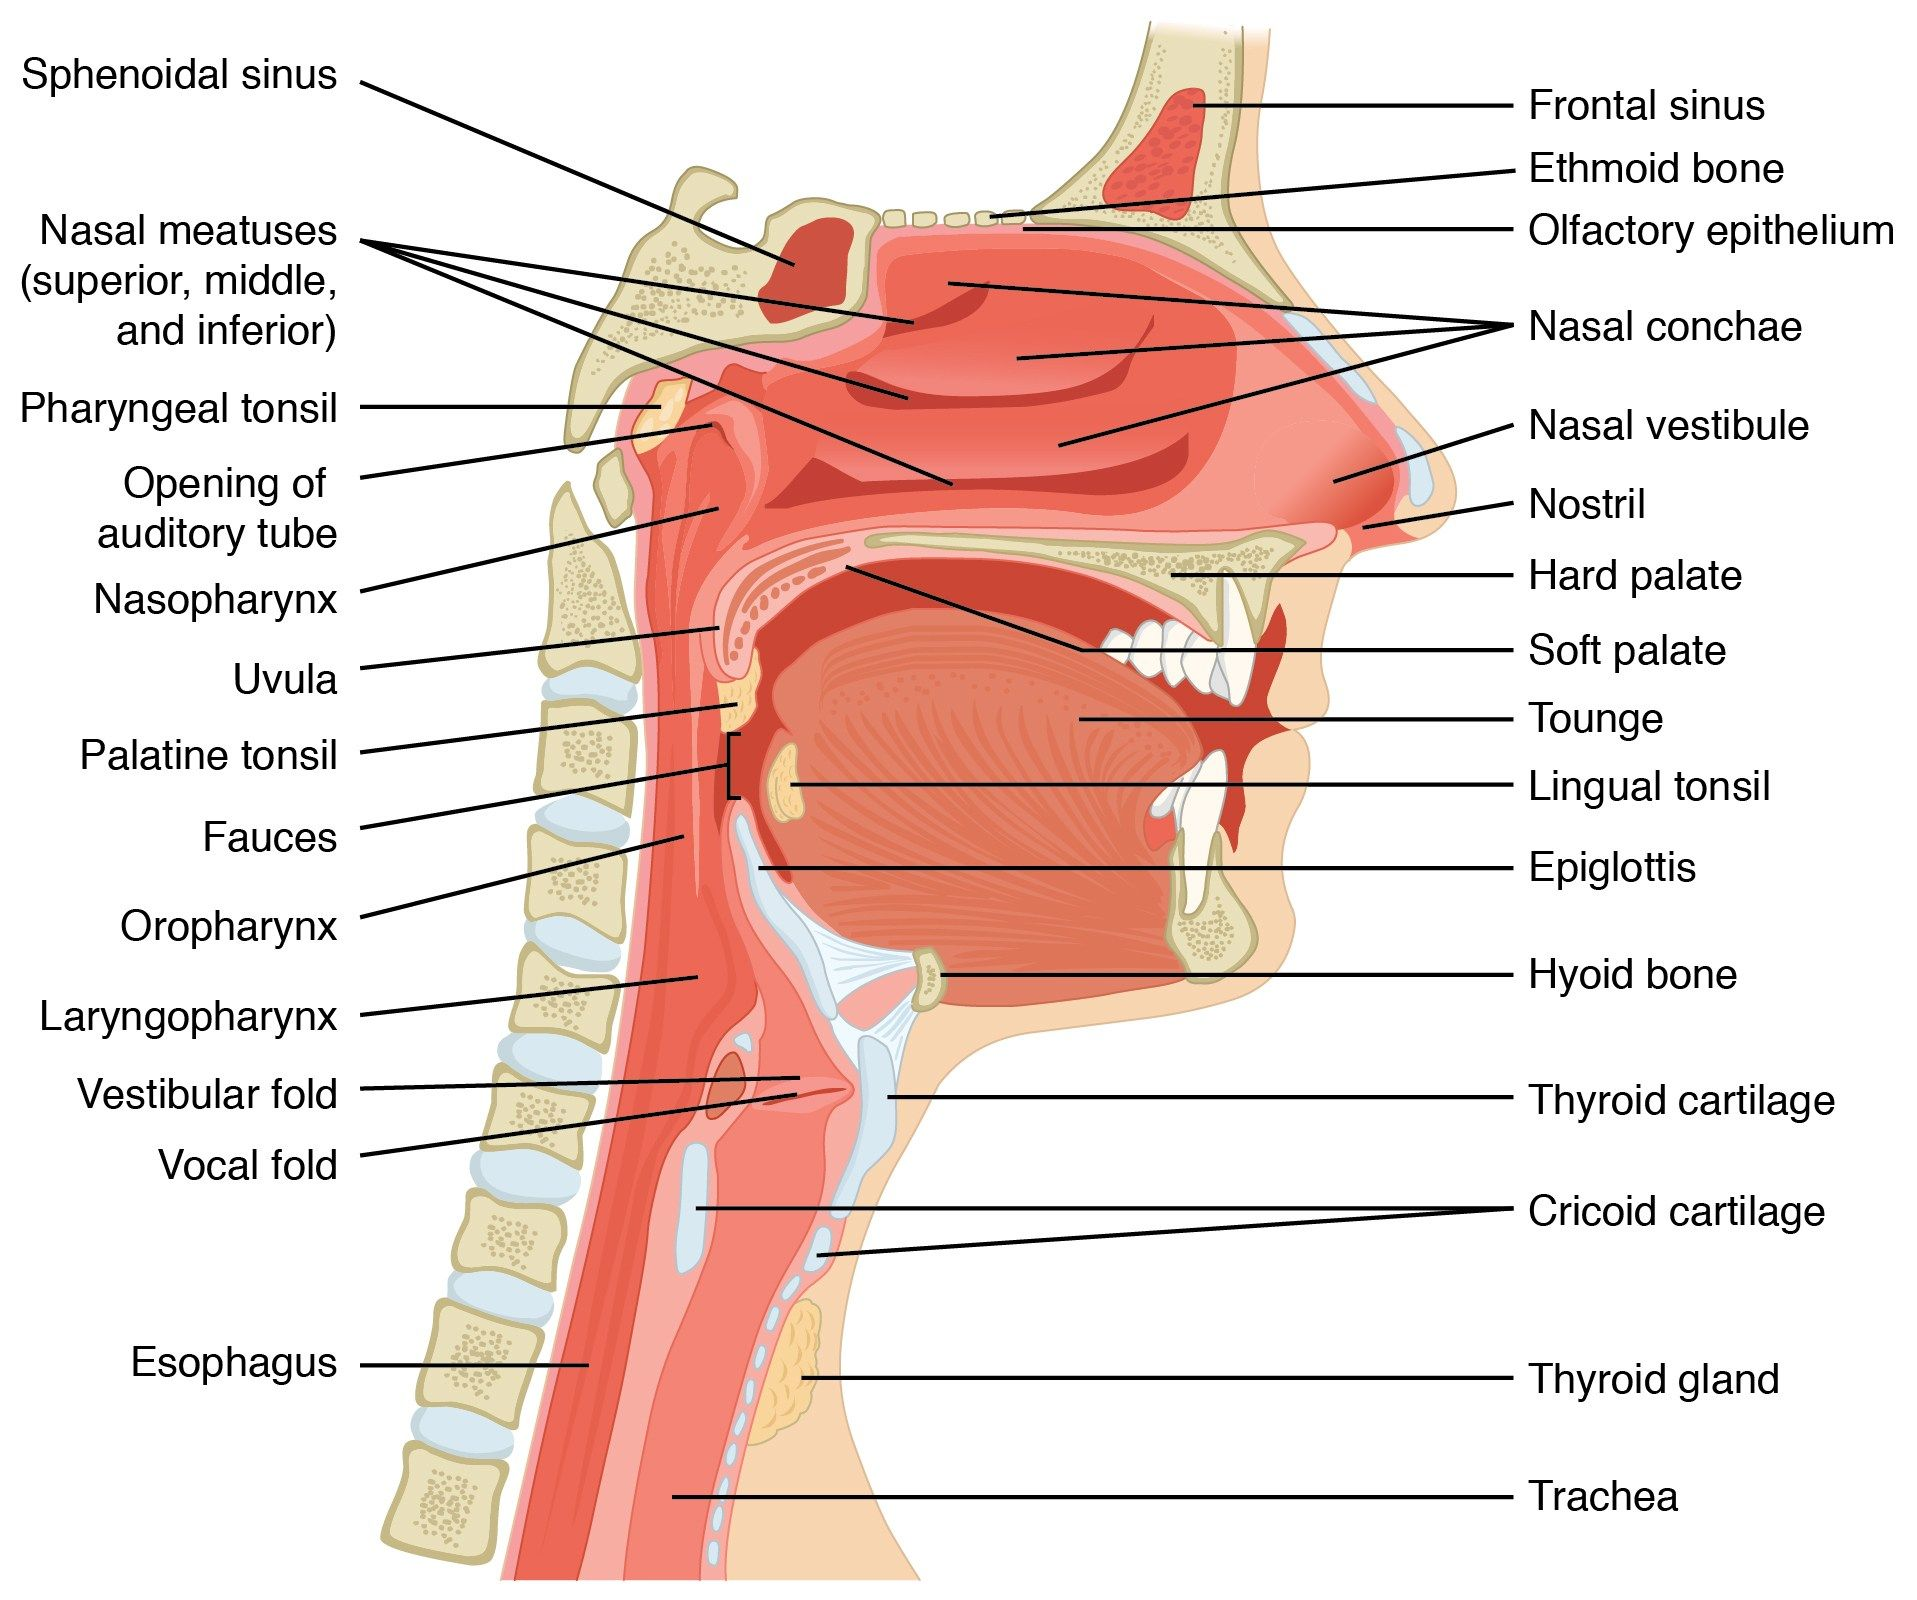 hight resolution of labelled diagram of pharynx wiring diagram advance labelled diagram of pharynx